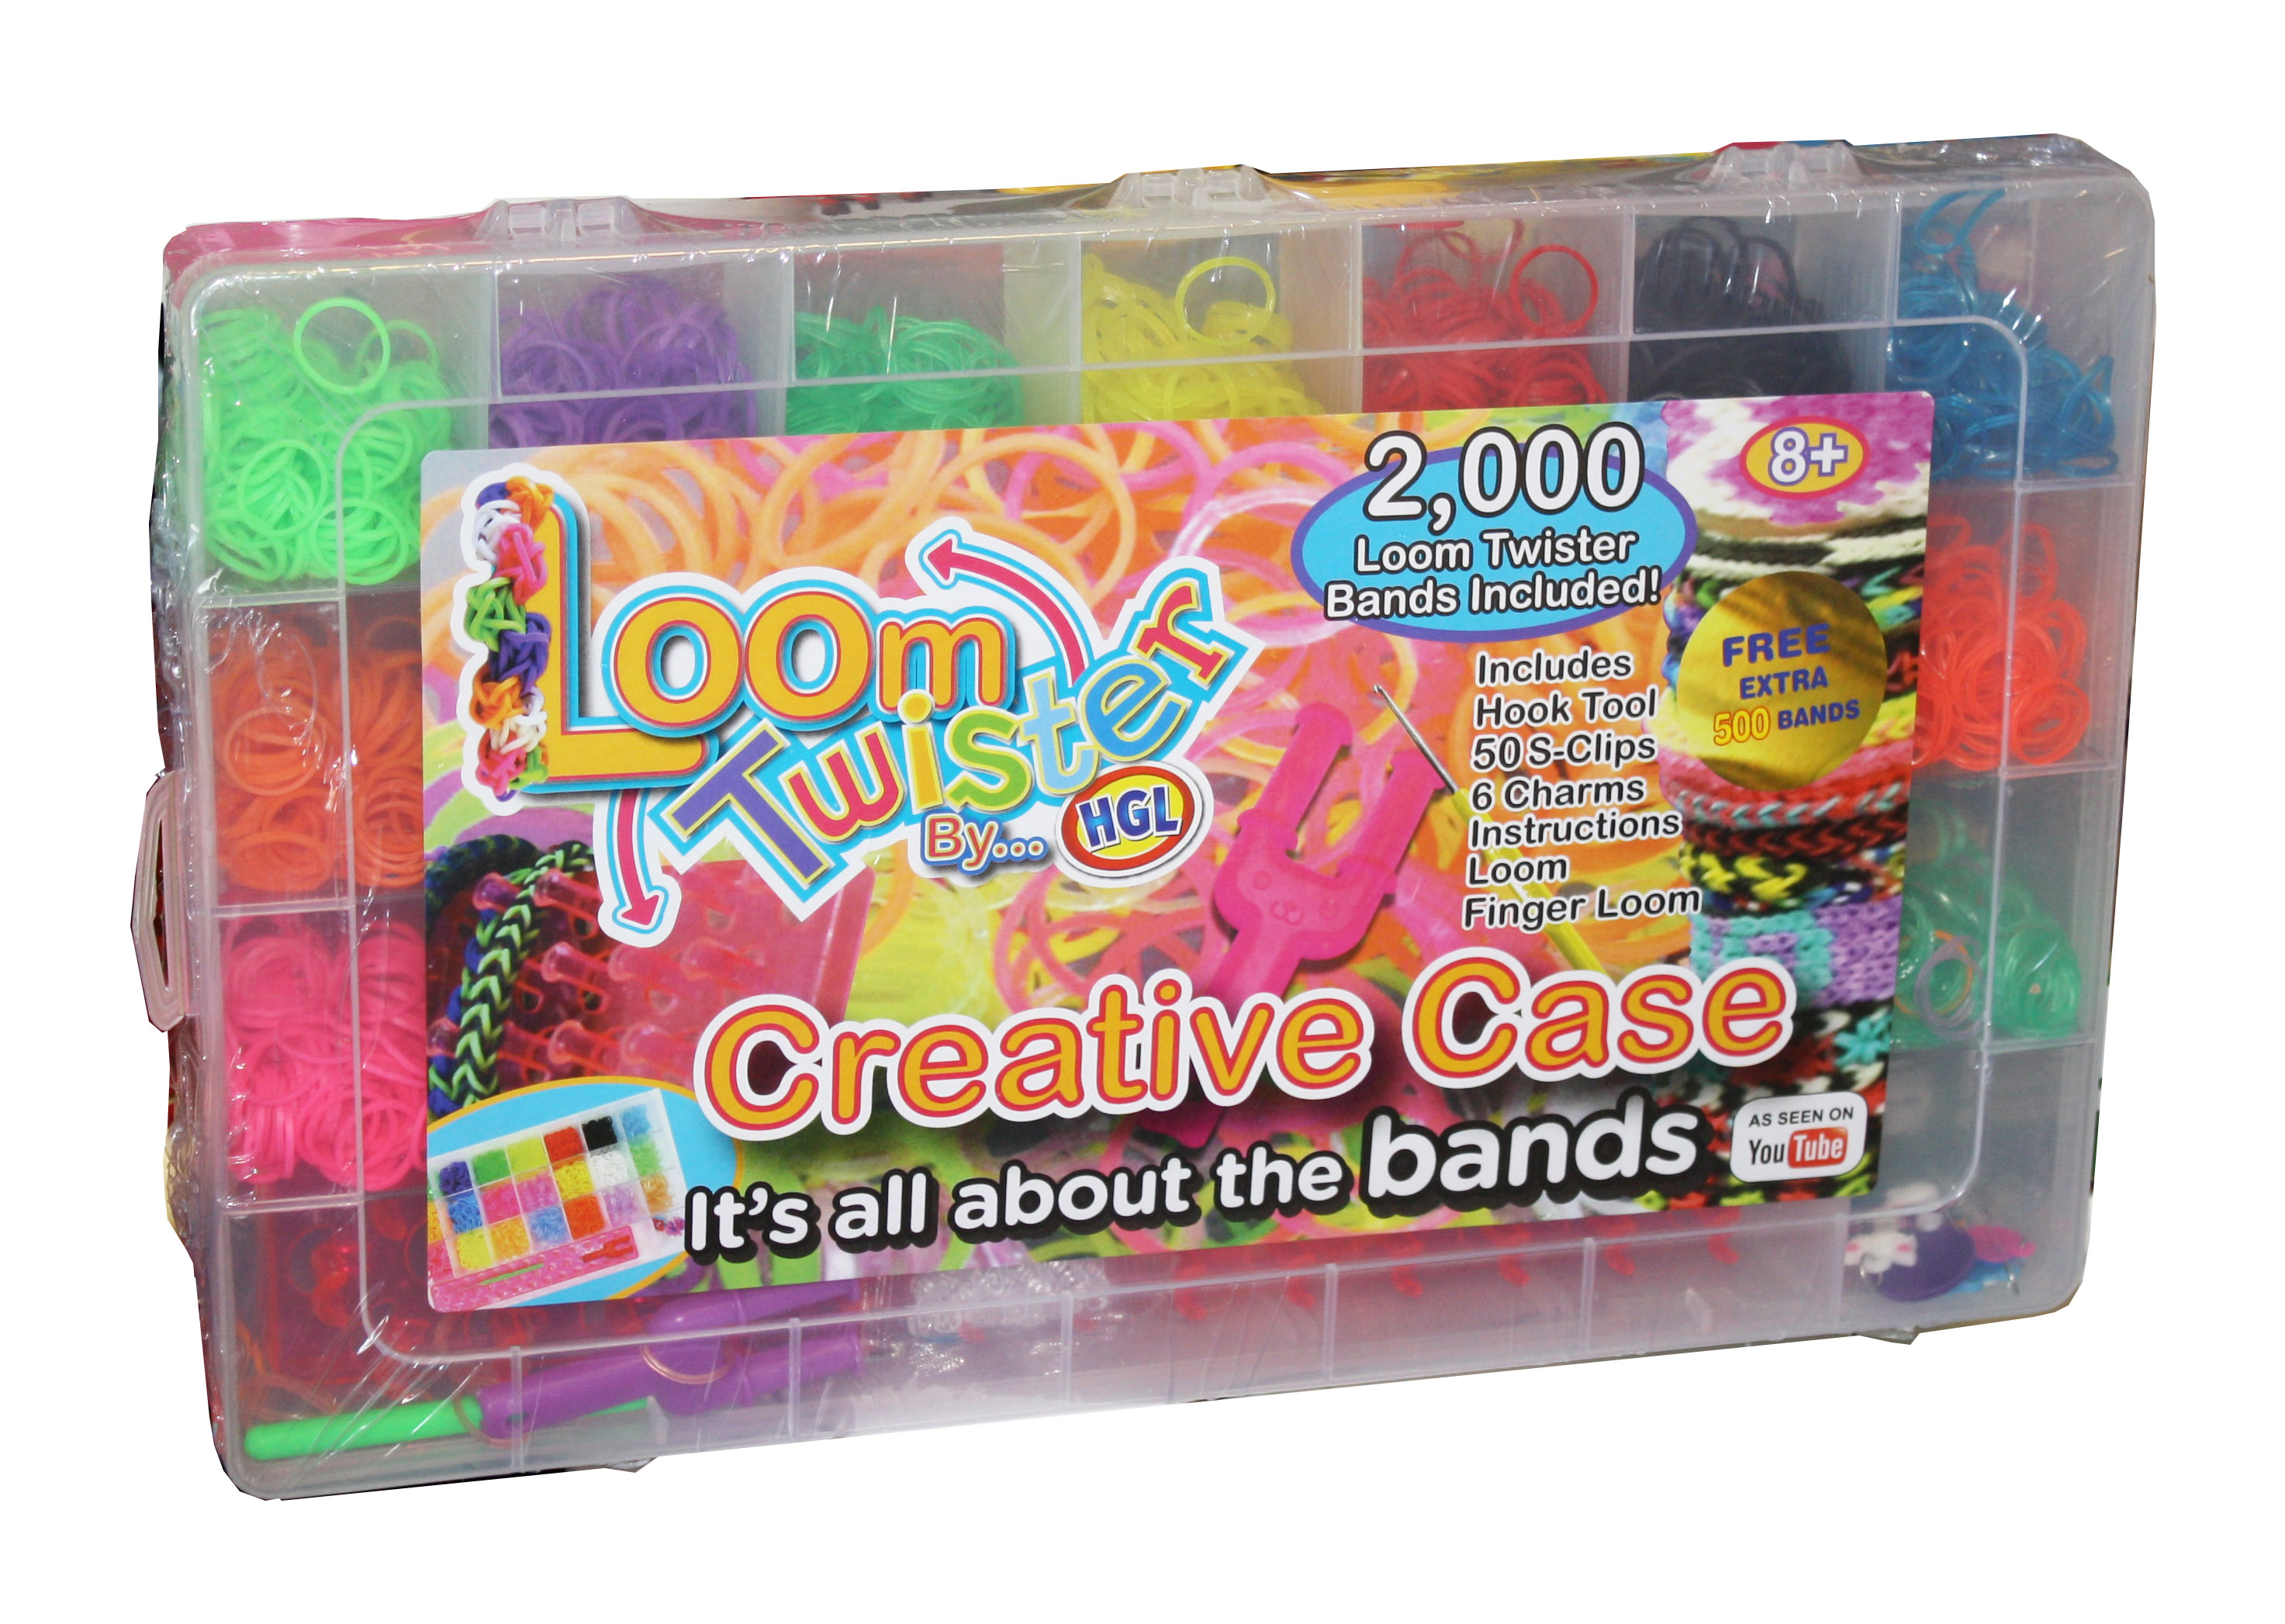 Loom_Twister_Creative_Case_2000_with_500_extra_bands[1]